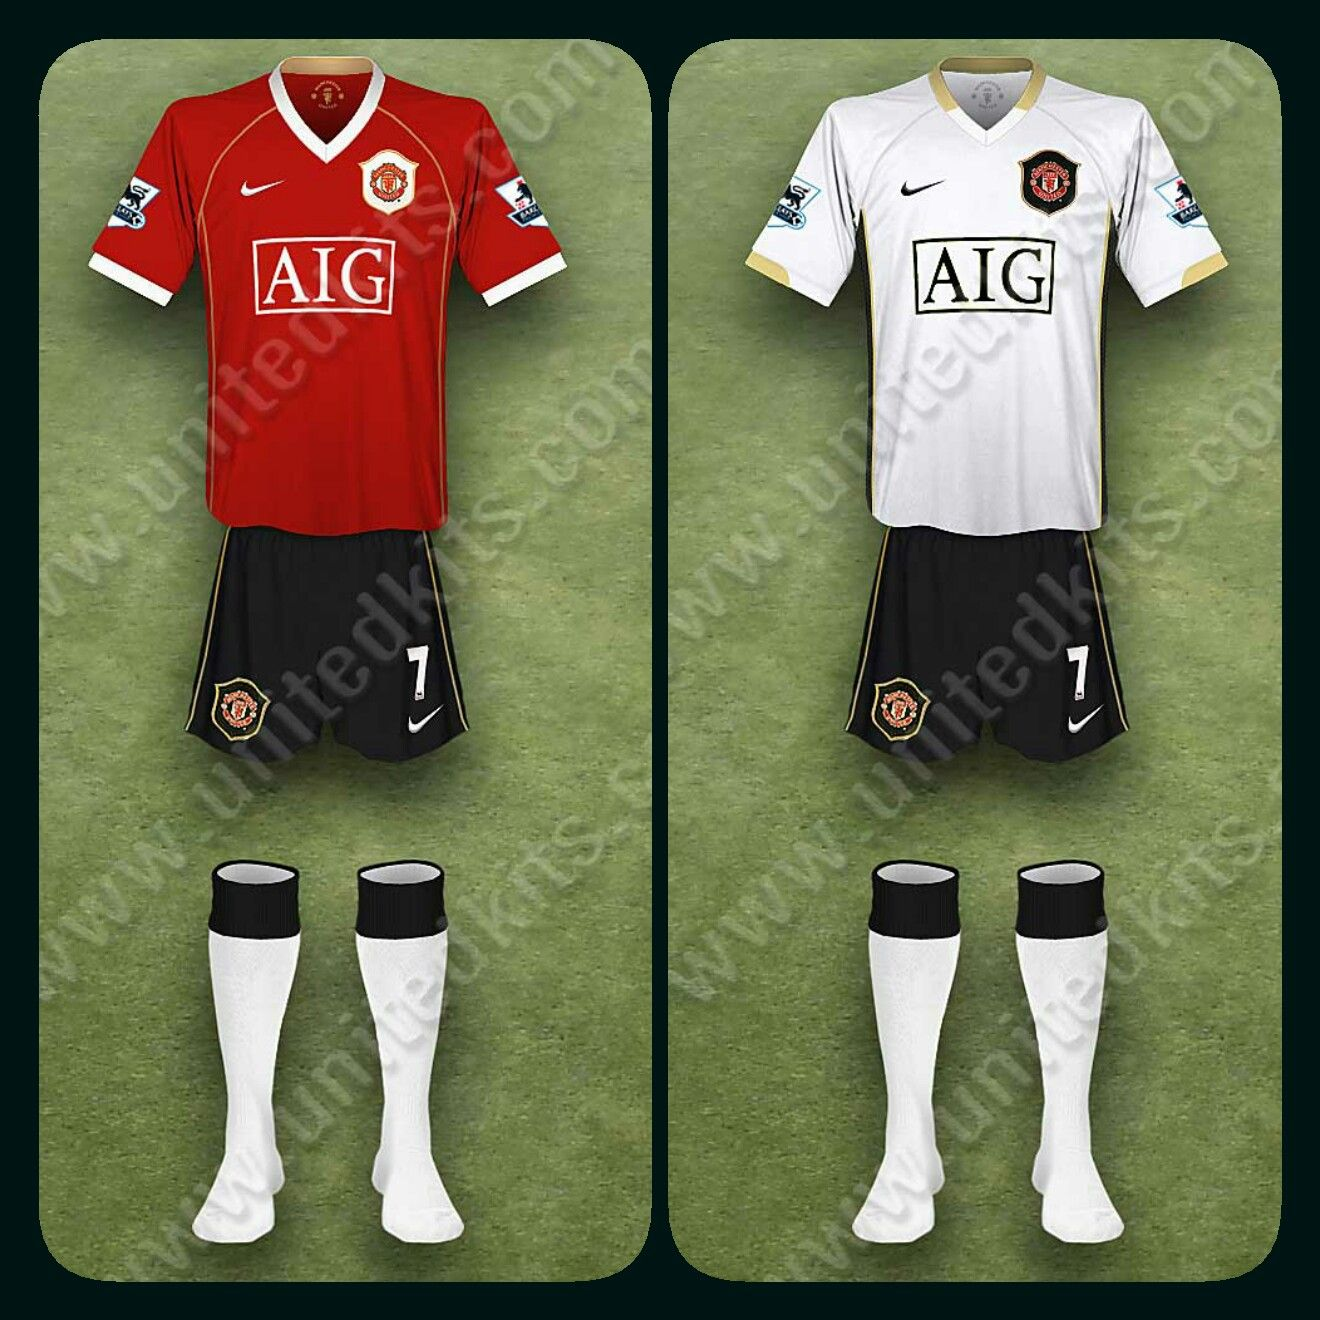 bcd728550 Man Utd home kit (with black shorts and white socks) and the away kit for  2006-07.